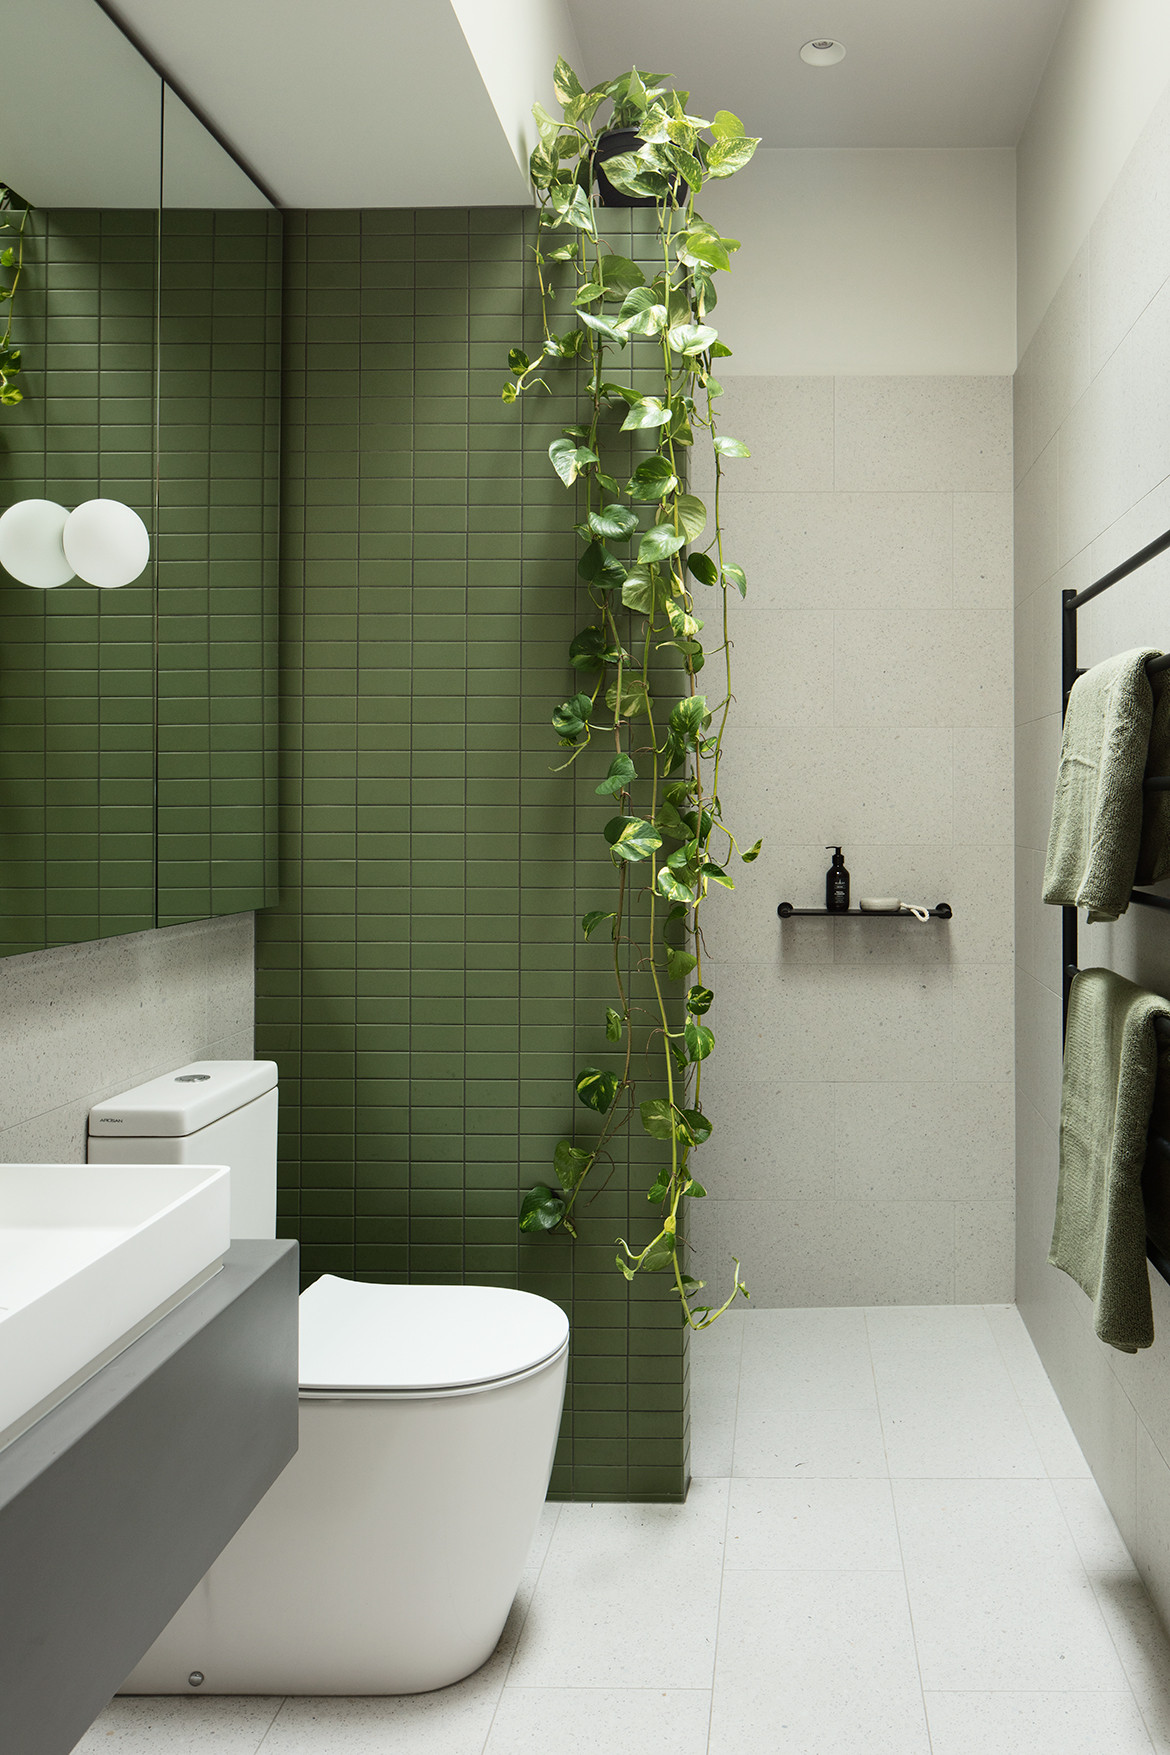 Green and white tiled bathroom.